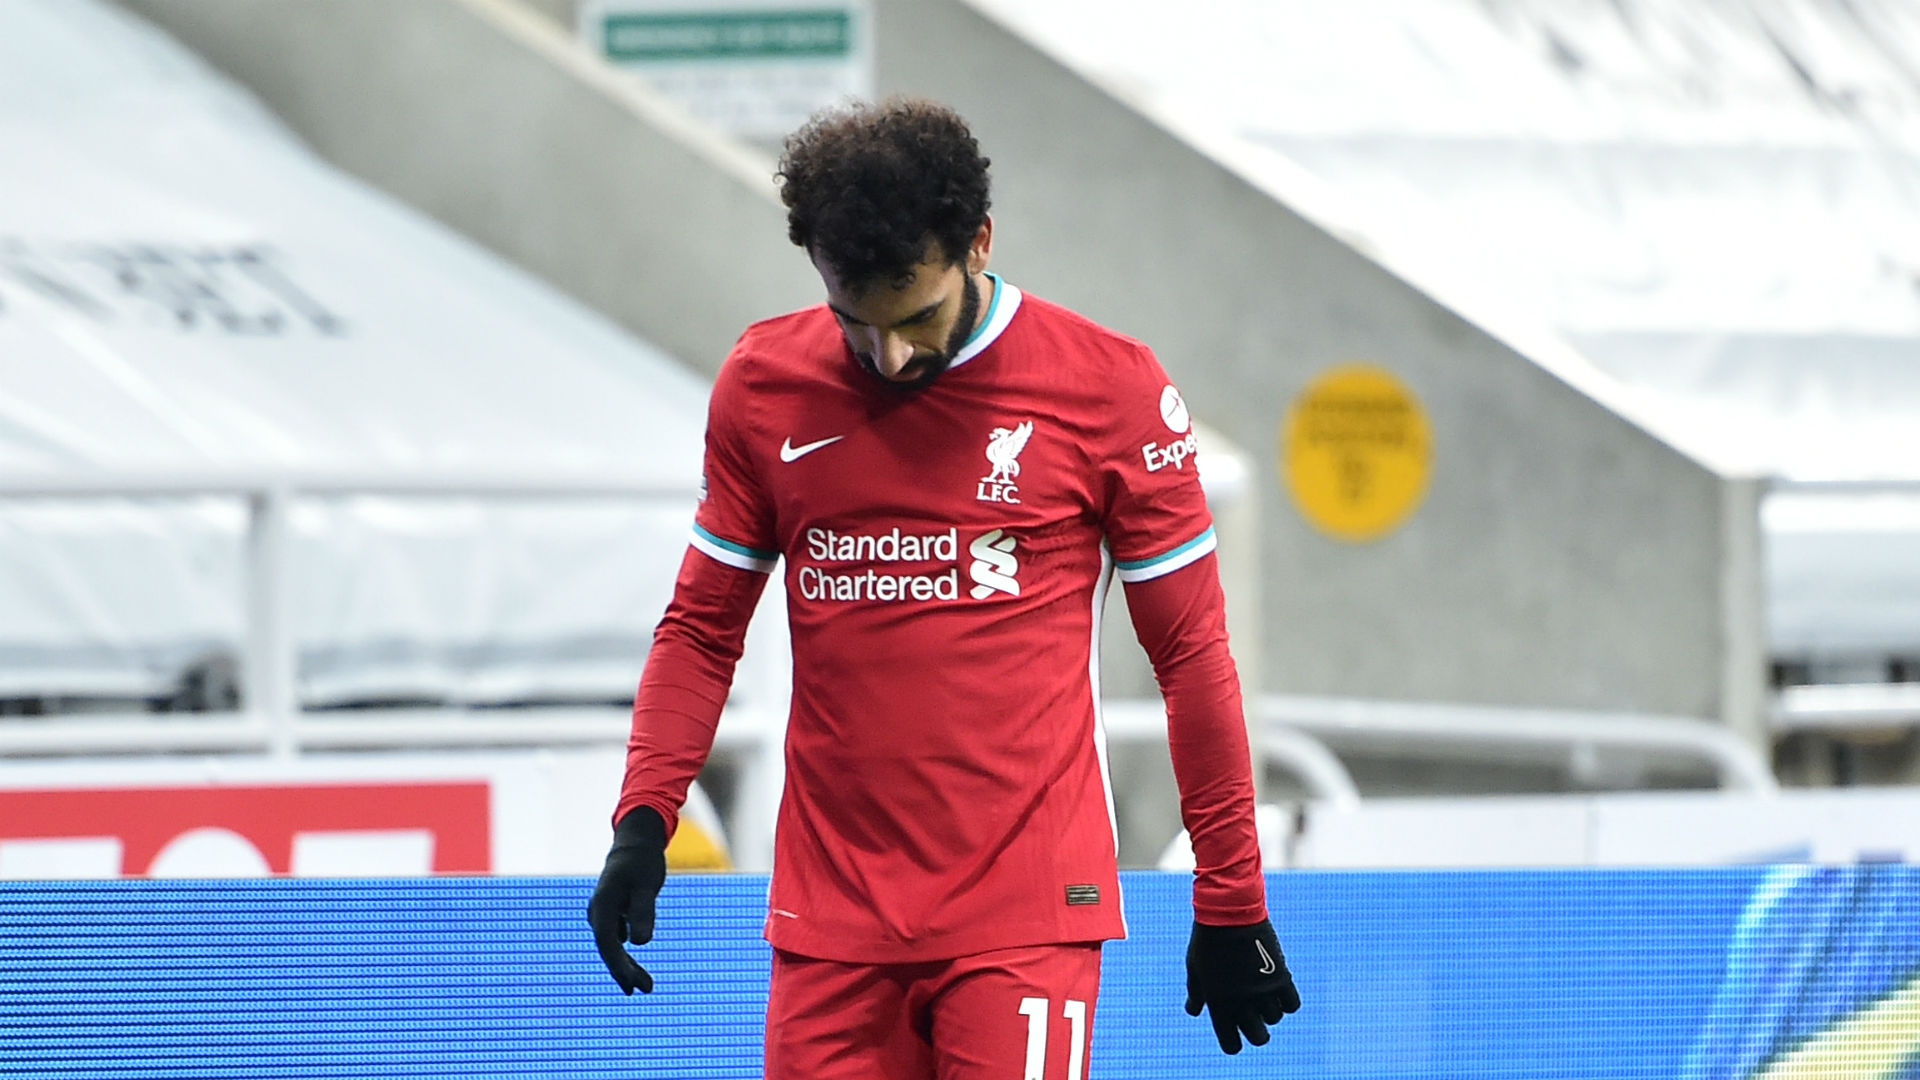 Liverpool frustrated as goal-friendly fixture ends scoreless at St James'